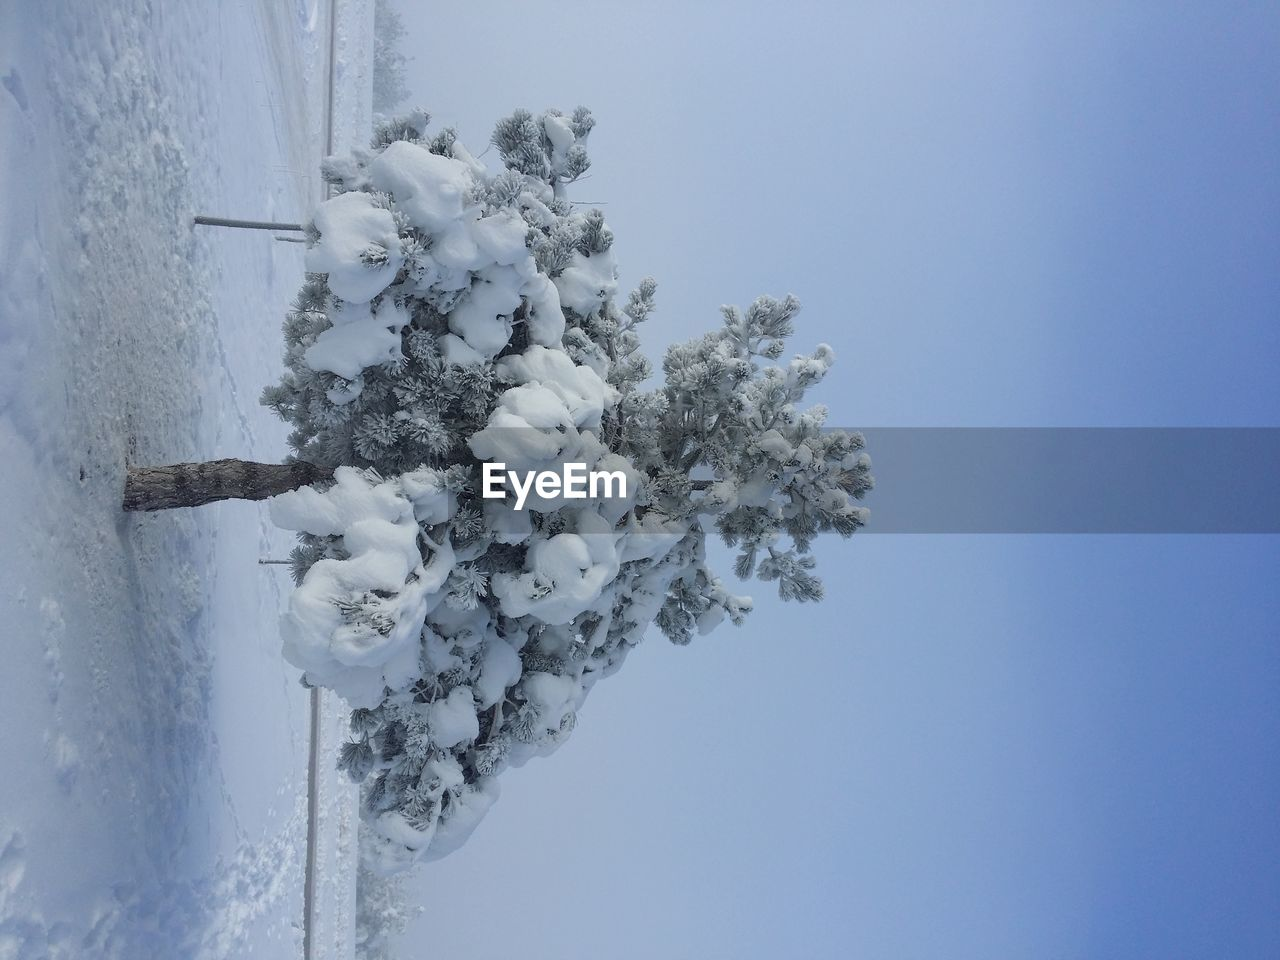 nature, plant, sky, white color, winter, snow, cold temperature, no people, day, tree, copy space, beauty in nature, clear sky, frozen, outdoors, branch, blue, close-up, growth